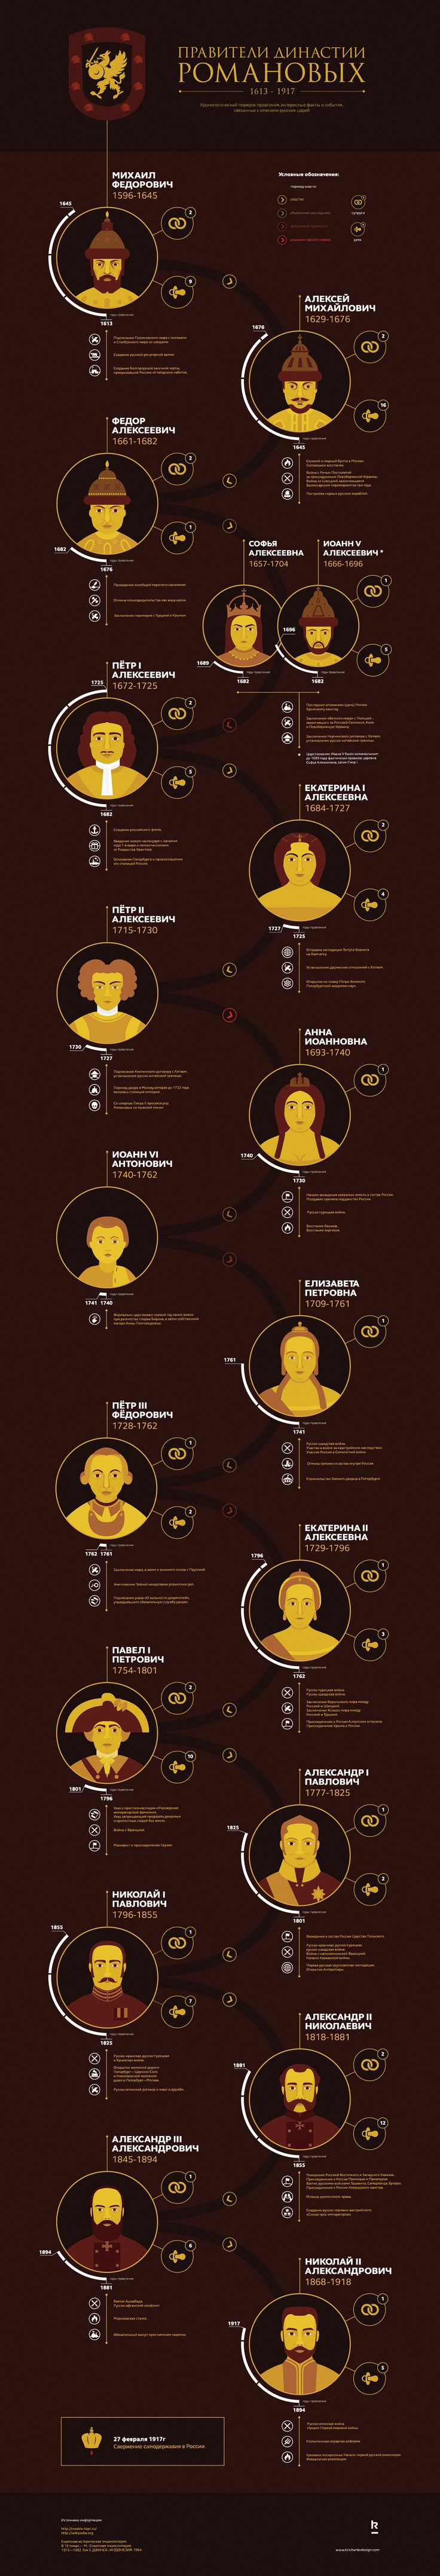 Romanov dynasty infographics. Rulers of Russia from 1613 until the Russian Revolution of February 1917. The chronological order of the reign, some interesting facts and events connected with the names of Russian tsars.